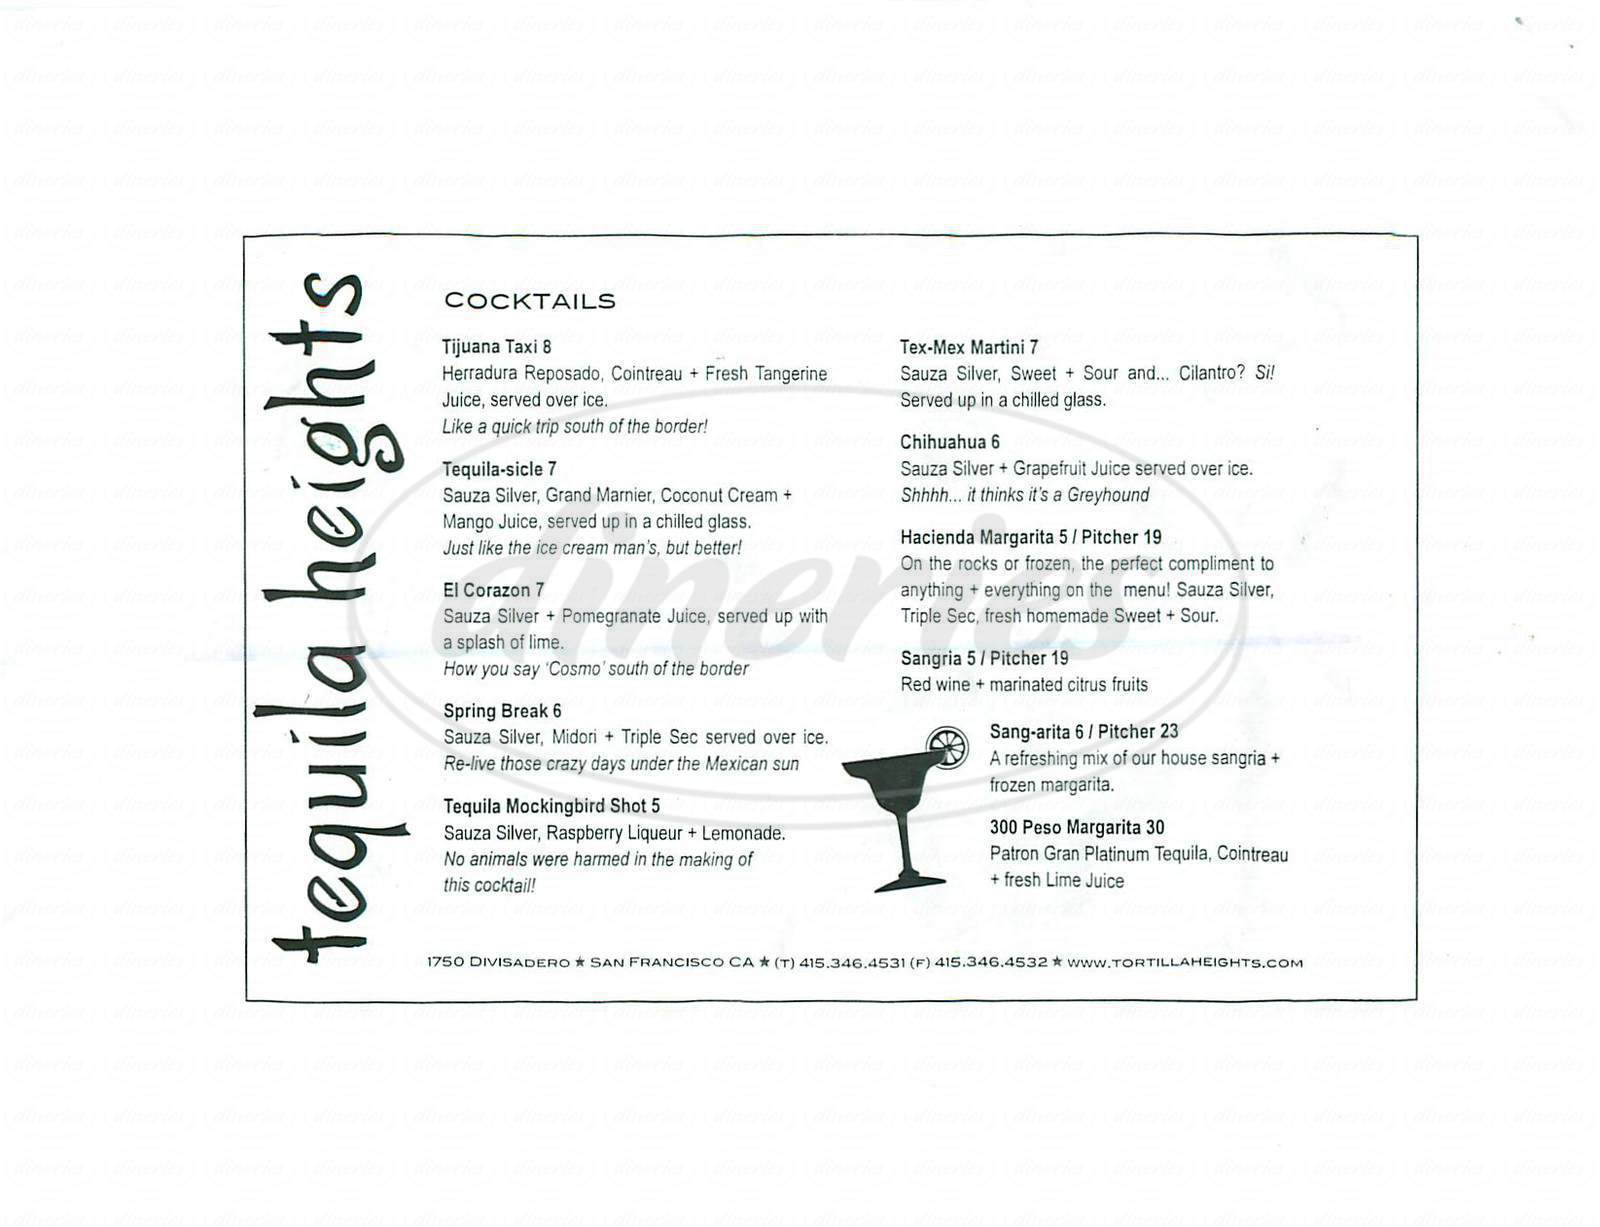 menu for Tortilla Heights